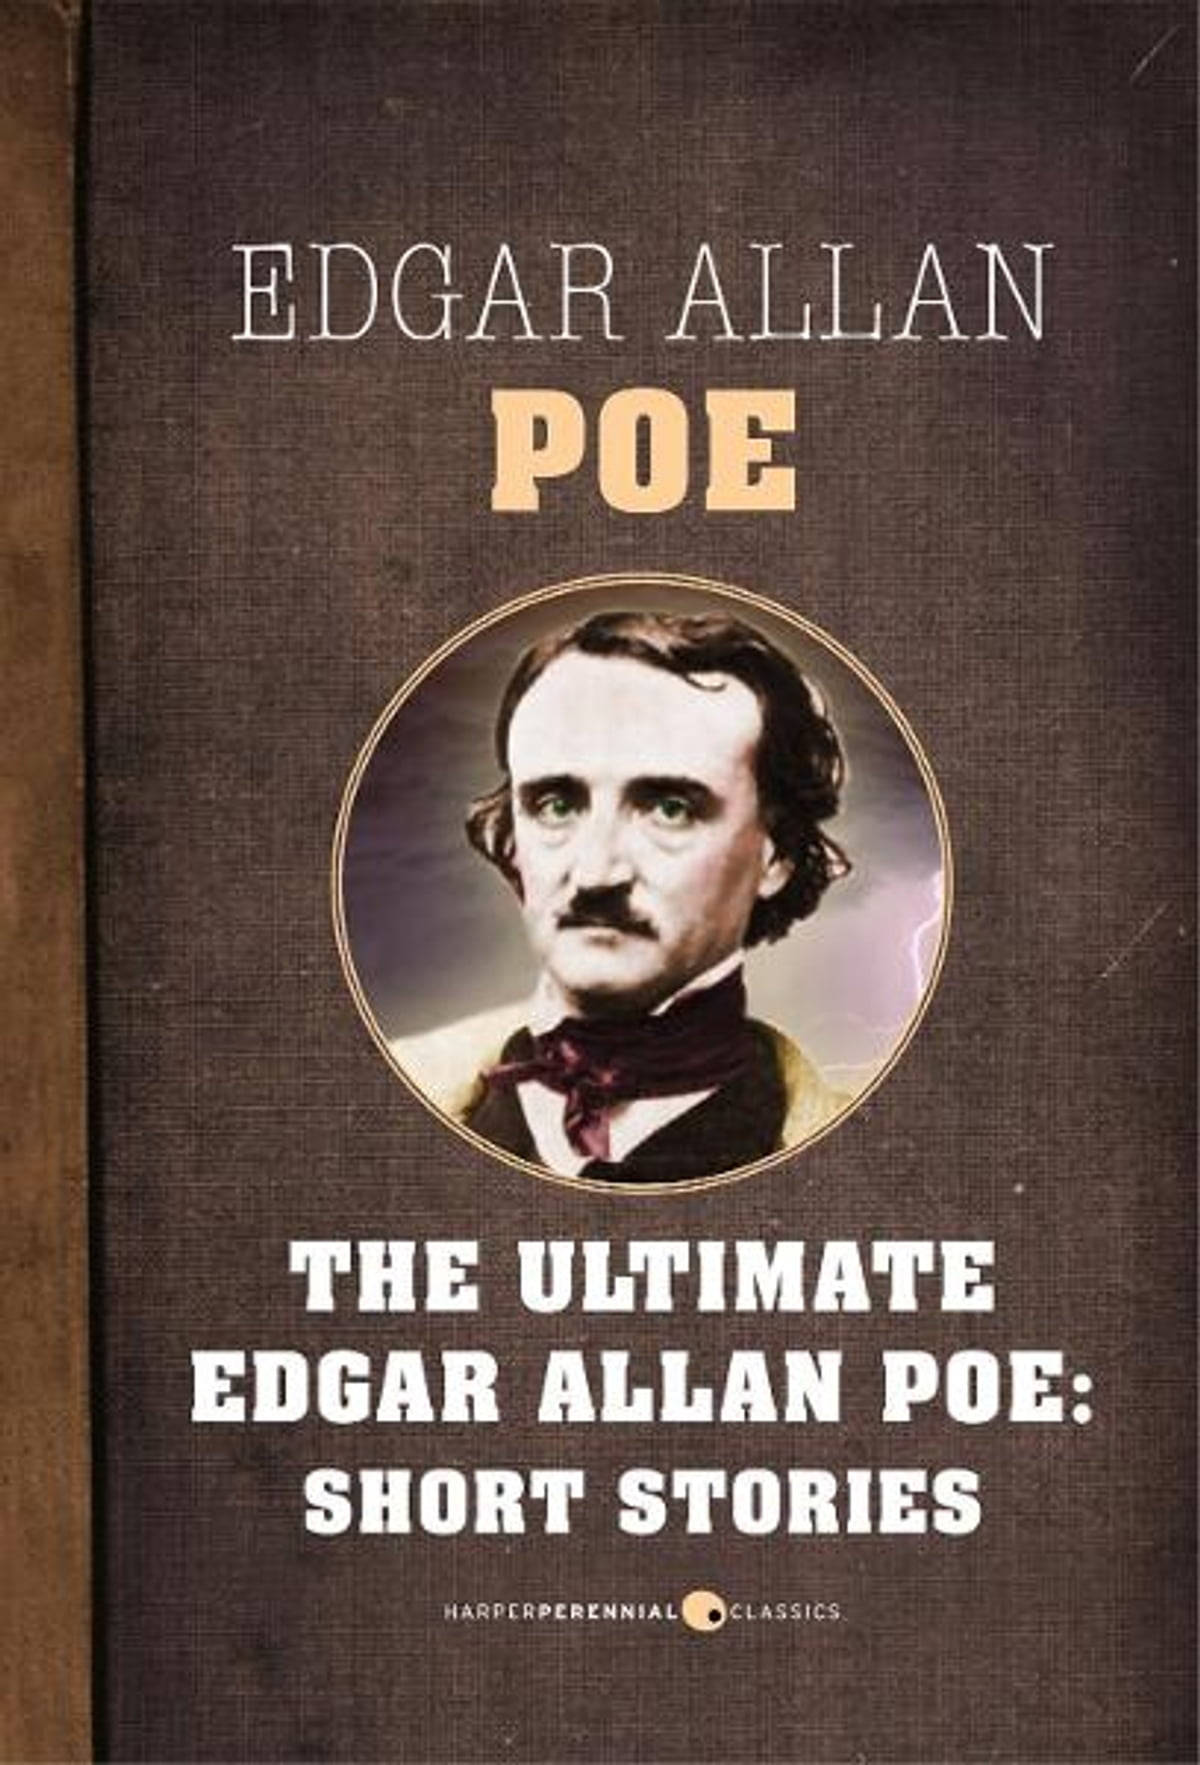 an analysis of the short story the sphinx by edgar allan poe Herein lies a detailed analysis of edgar allen poe's famous short story the cask of amontillado this story of a vengeful murder is still popular today, even 150 years after it was published.